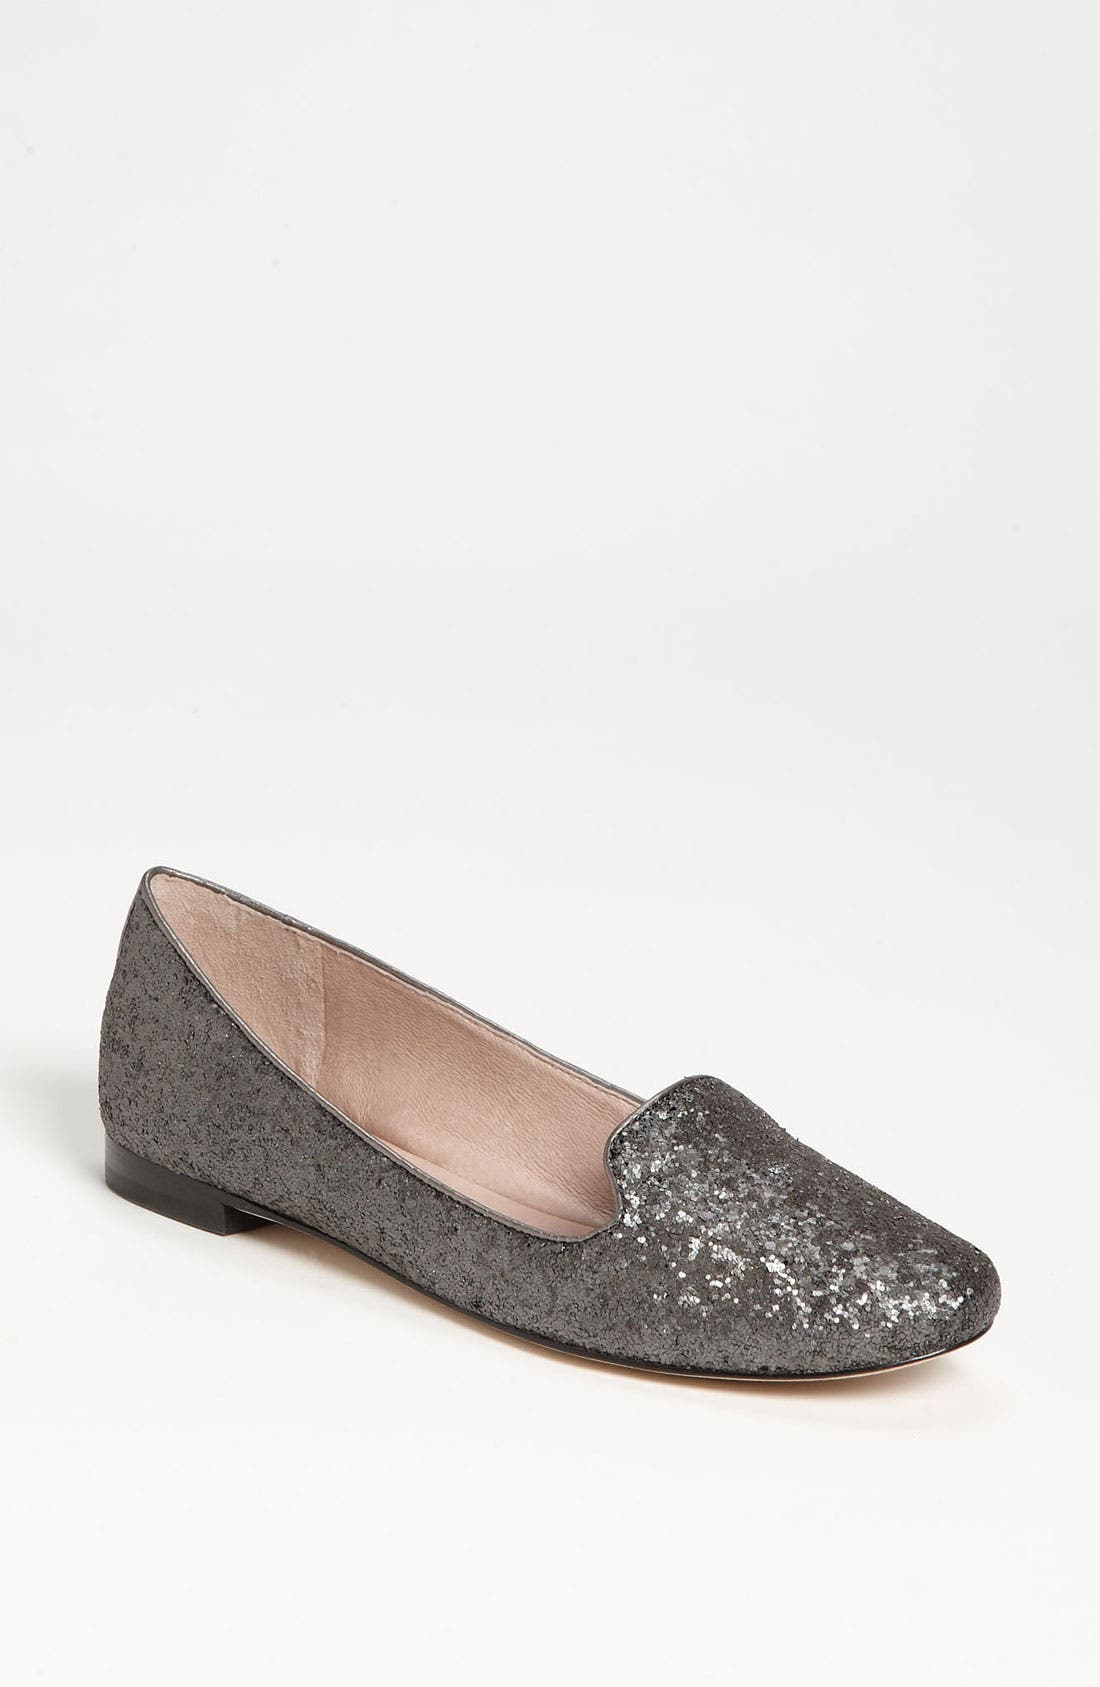 Alternate Image 1 Selected - Vince Camuto 'Loria' Flat